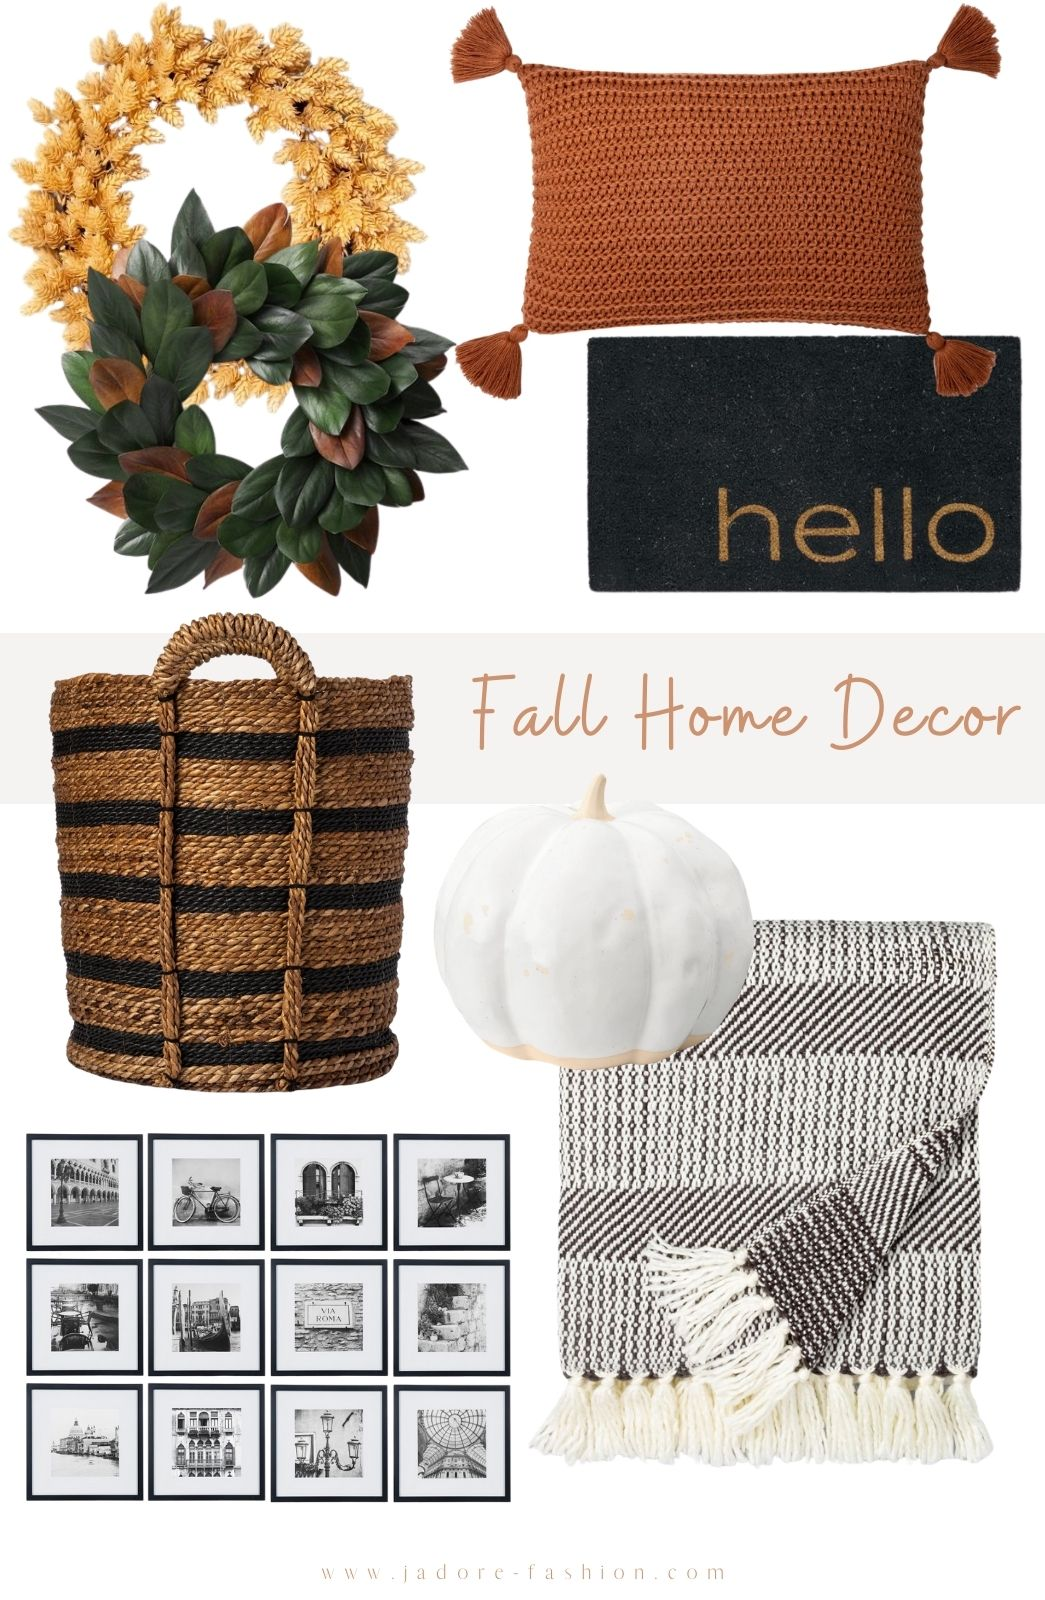 stella-adewunmi-of-jadore-fashion-blog-shares-weekend-finds-and-deals-fall-home-decor